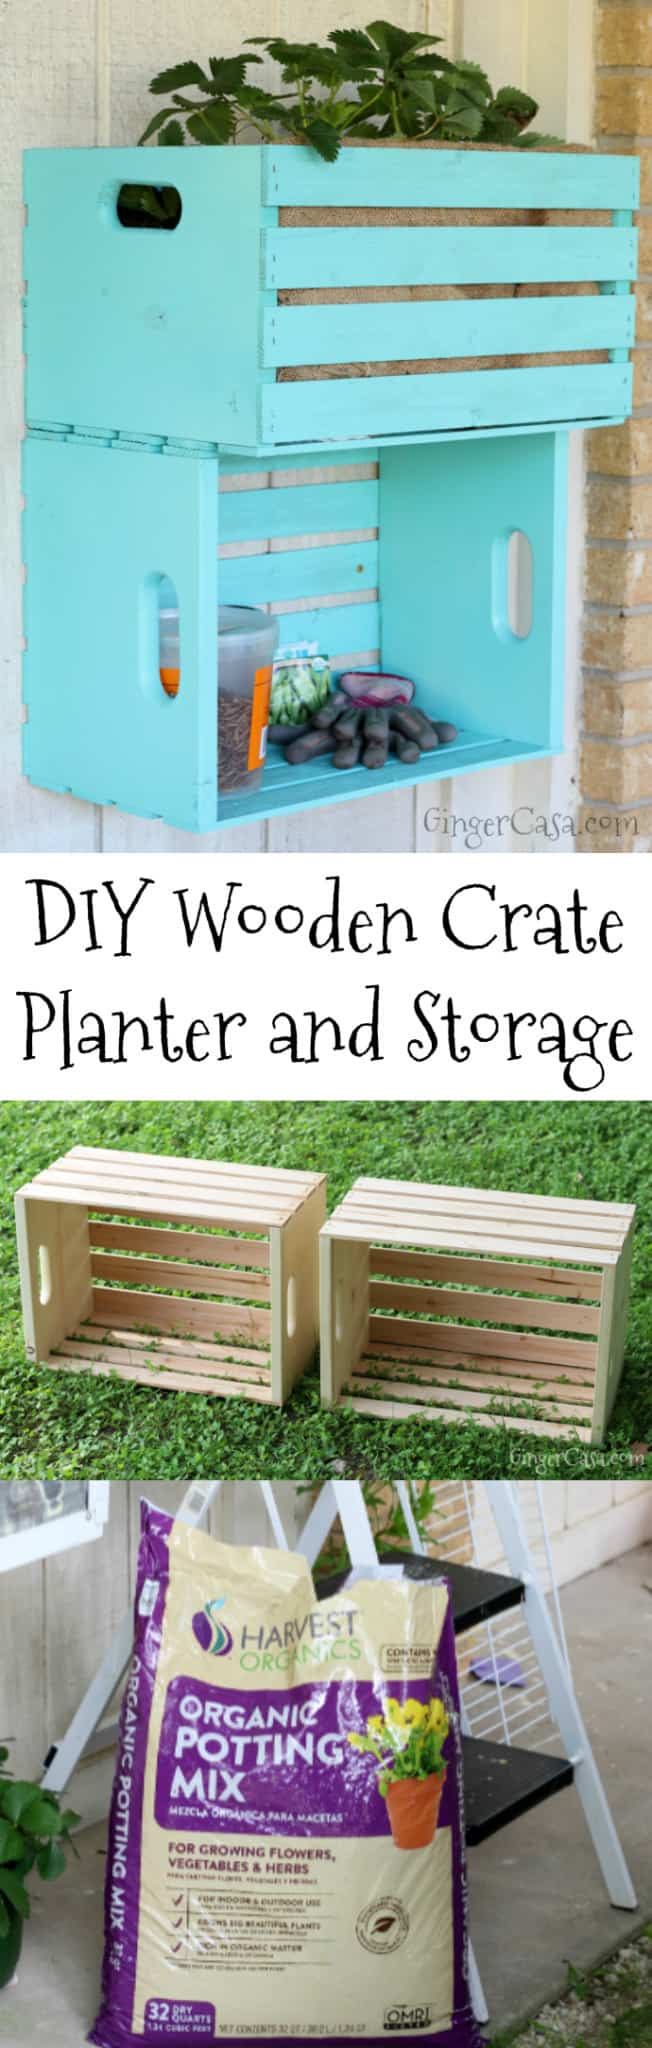 wooden crate planter and storage